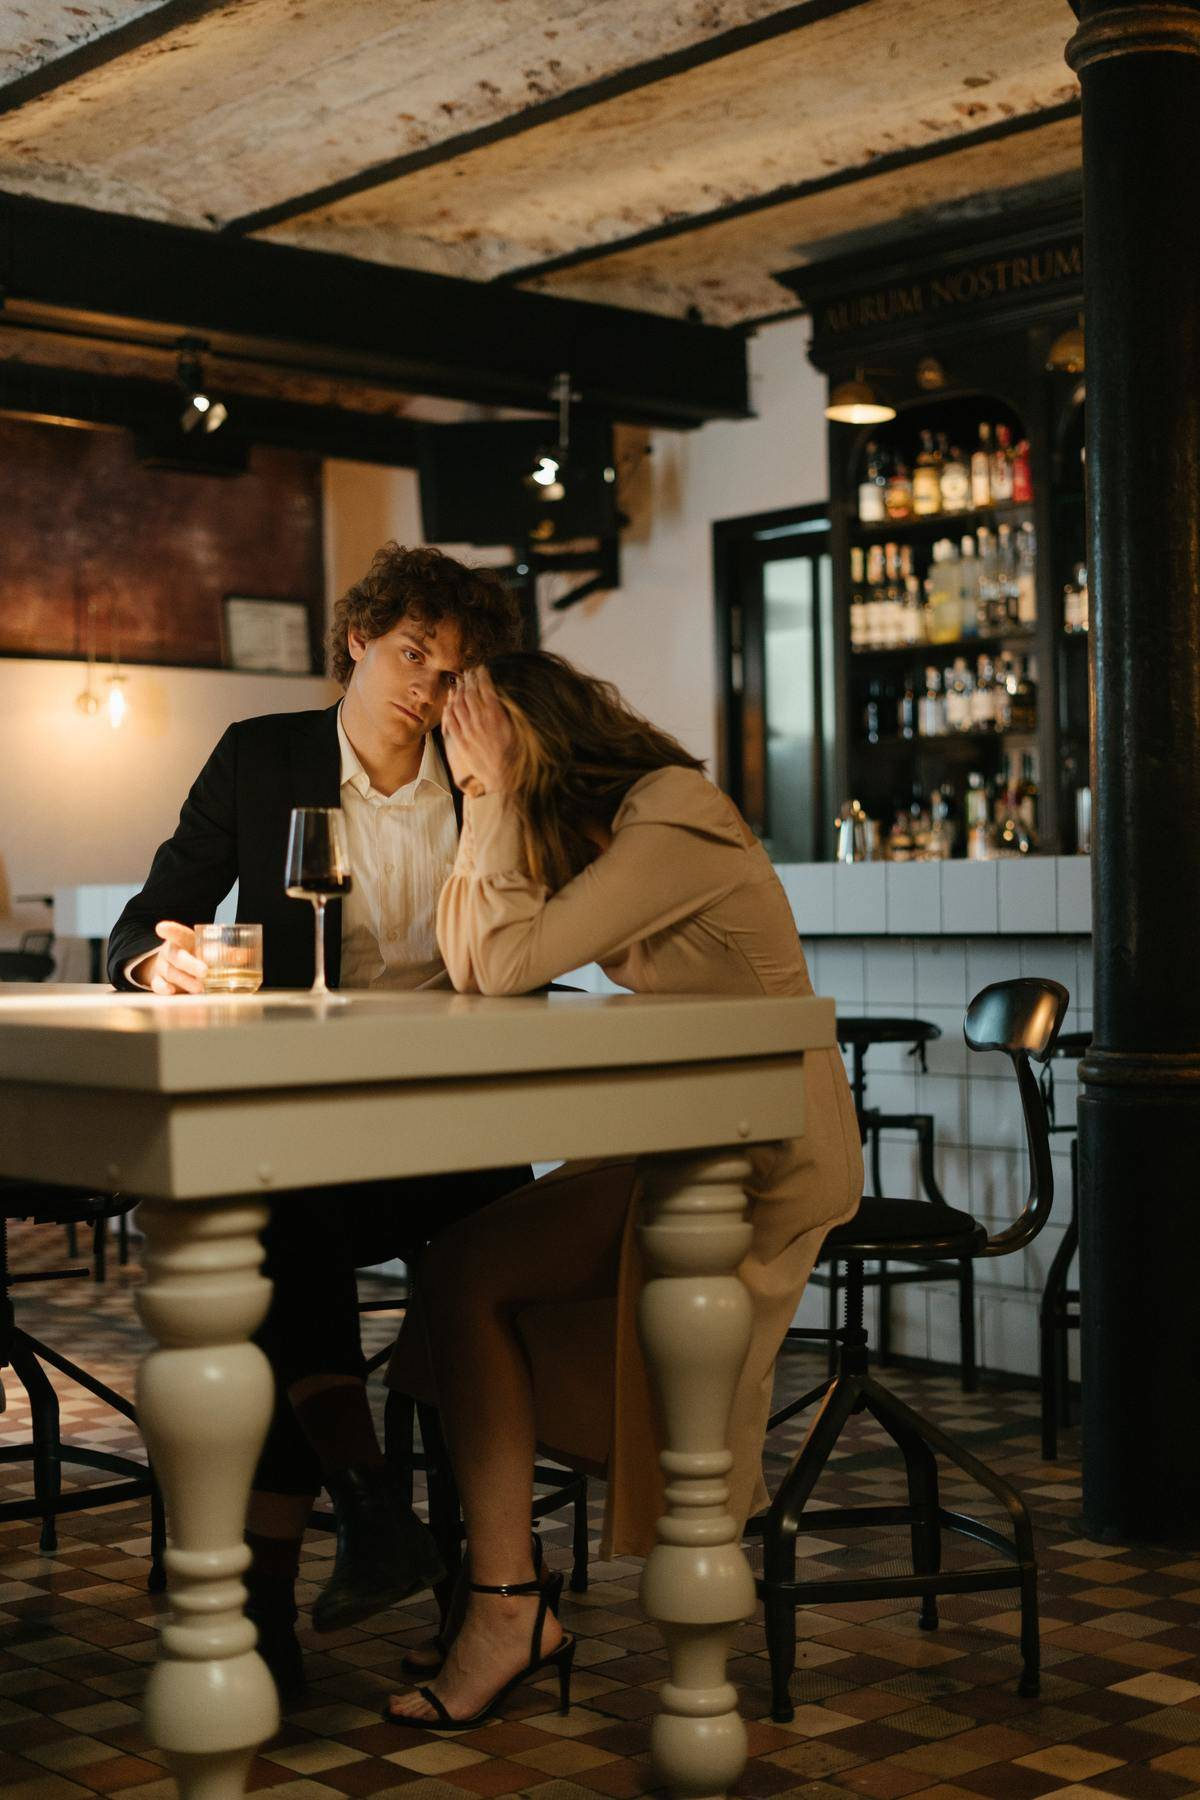 couple at a restaurant table looks upset